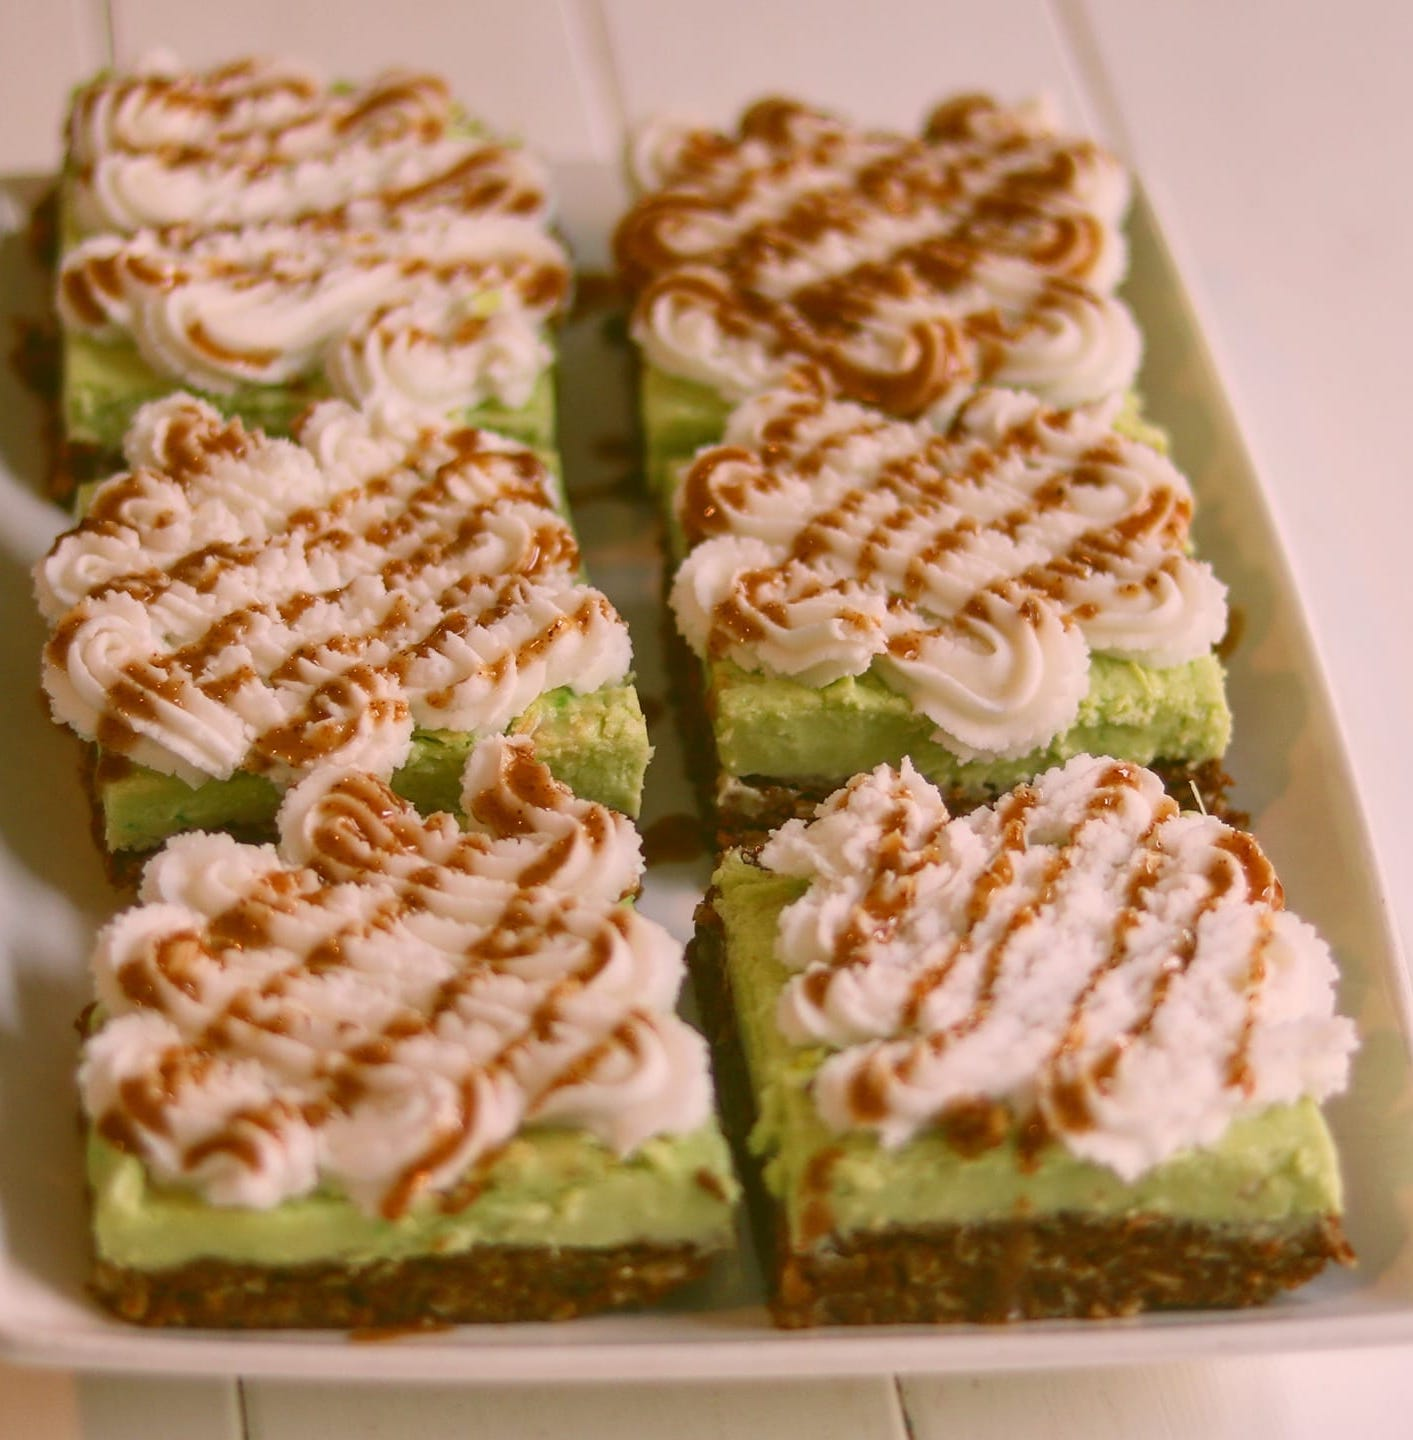 Giant Nanimo Bars with green middle, white frosting, caramel drizzle on top.